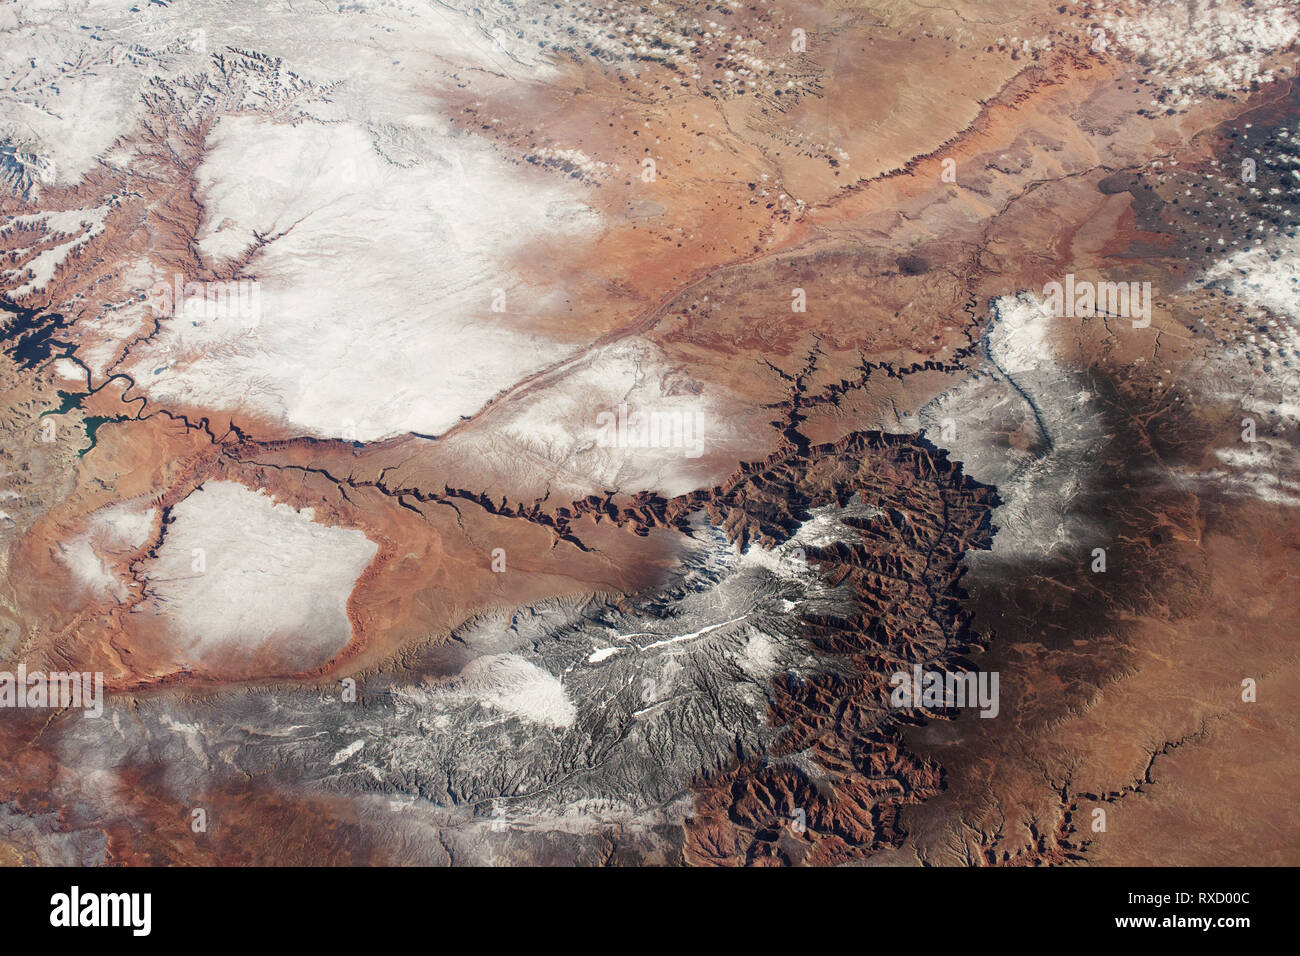 High altitude view of the Grand Canyon with fresh snow. - Stock Image